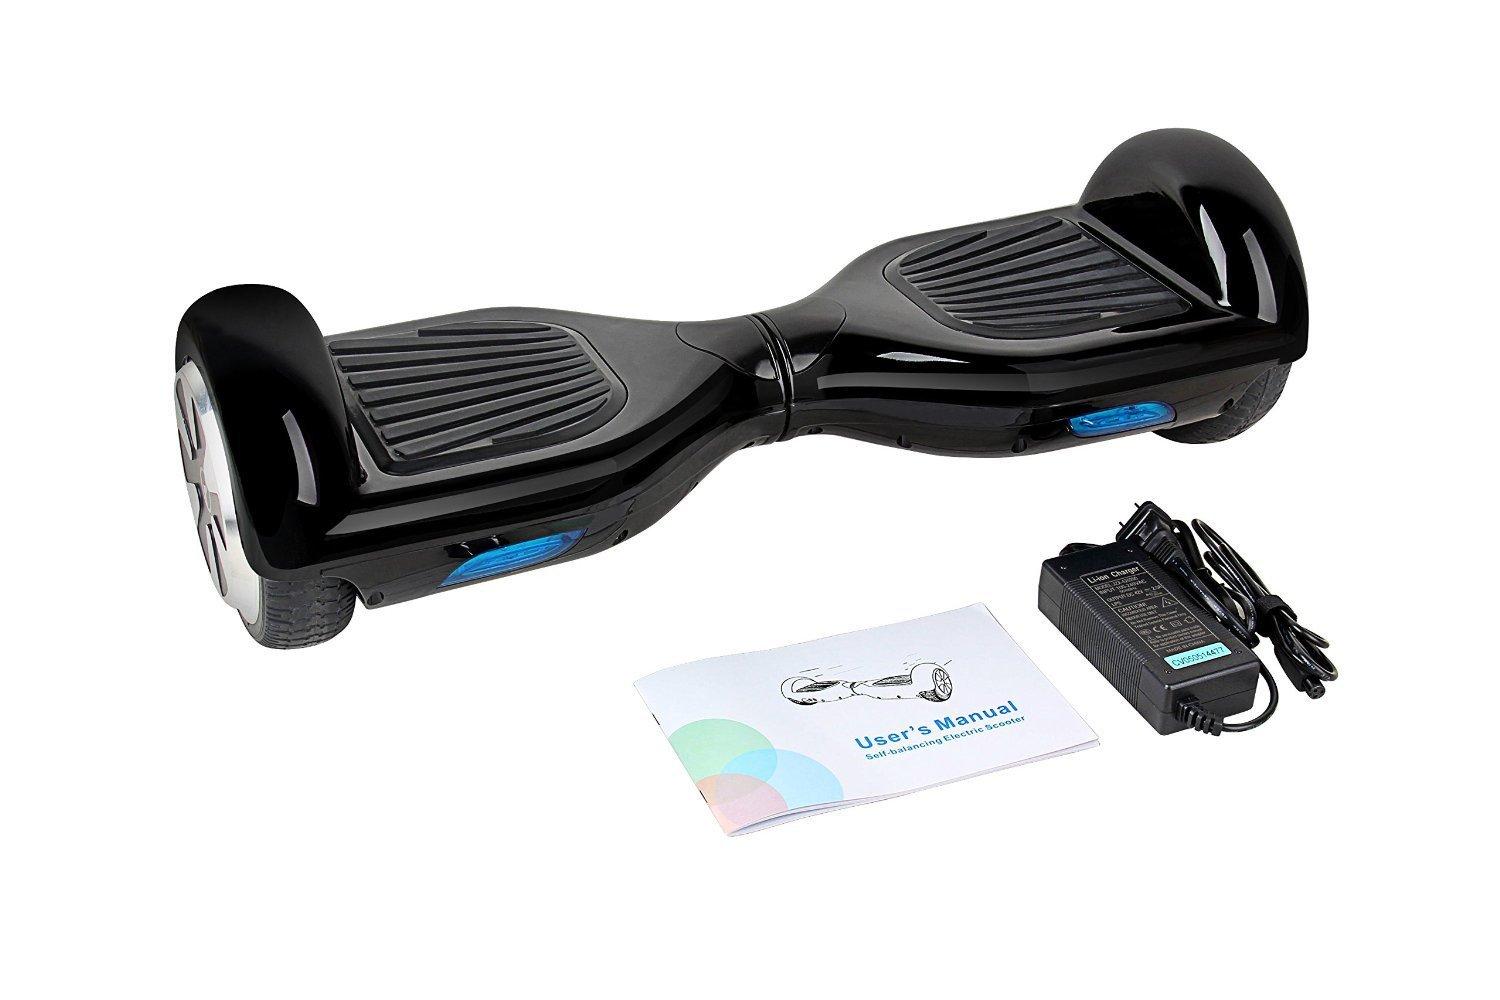 Monorover R2 self-balancing board review